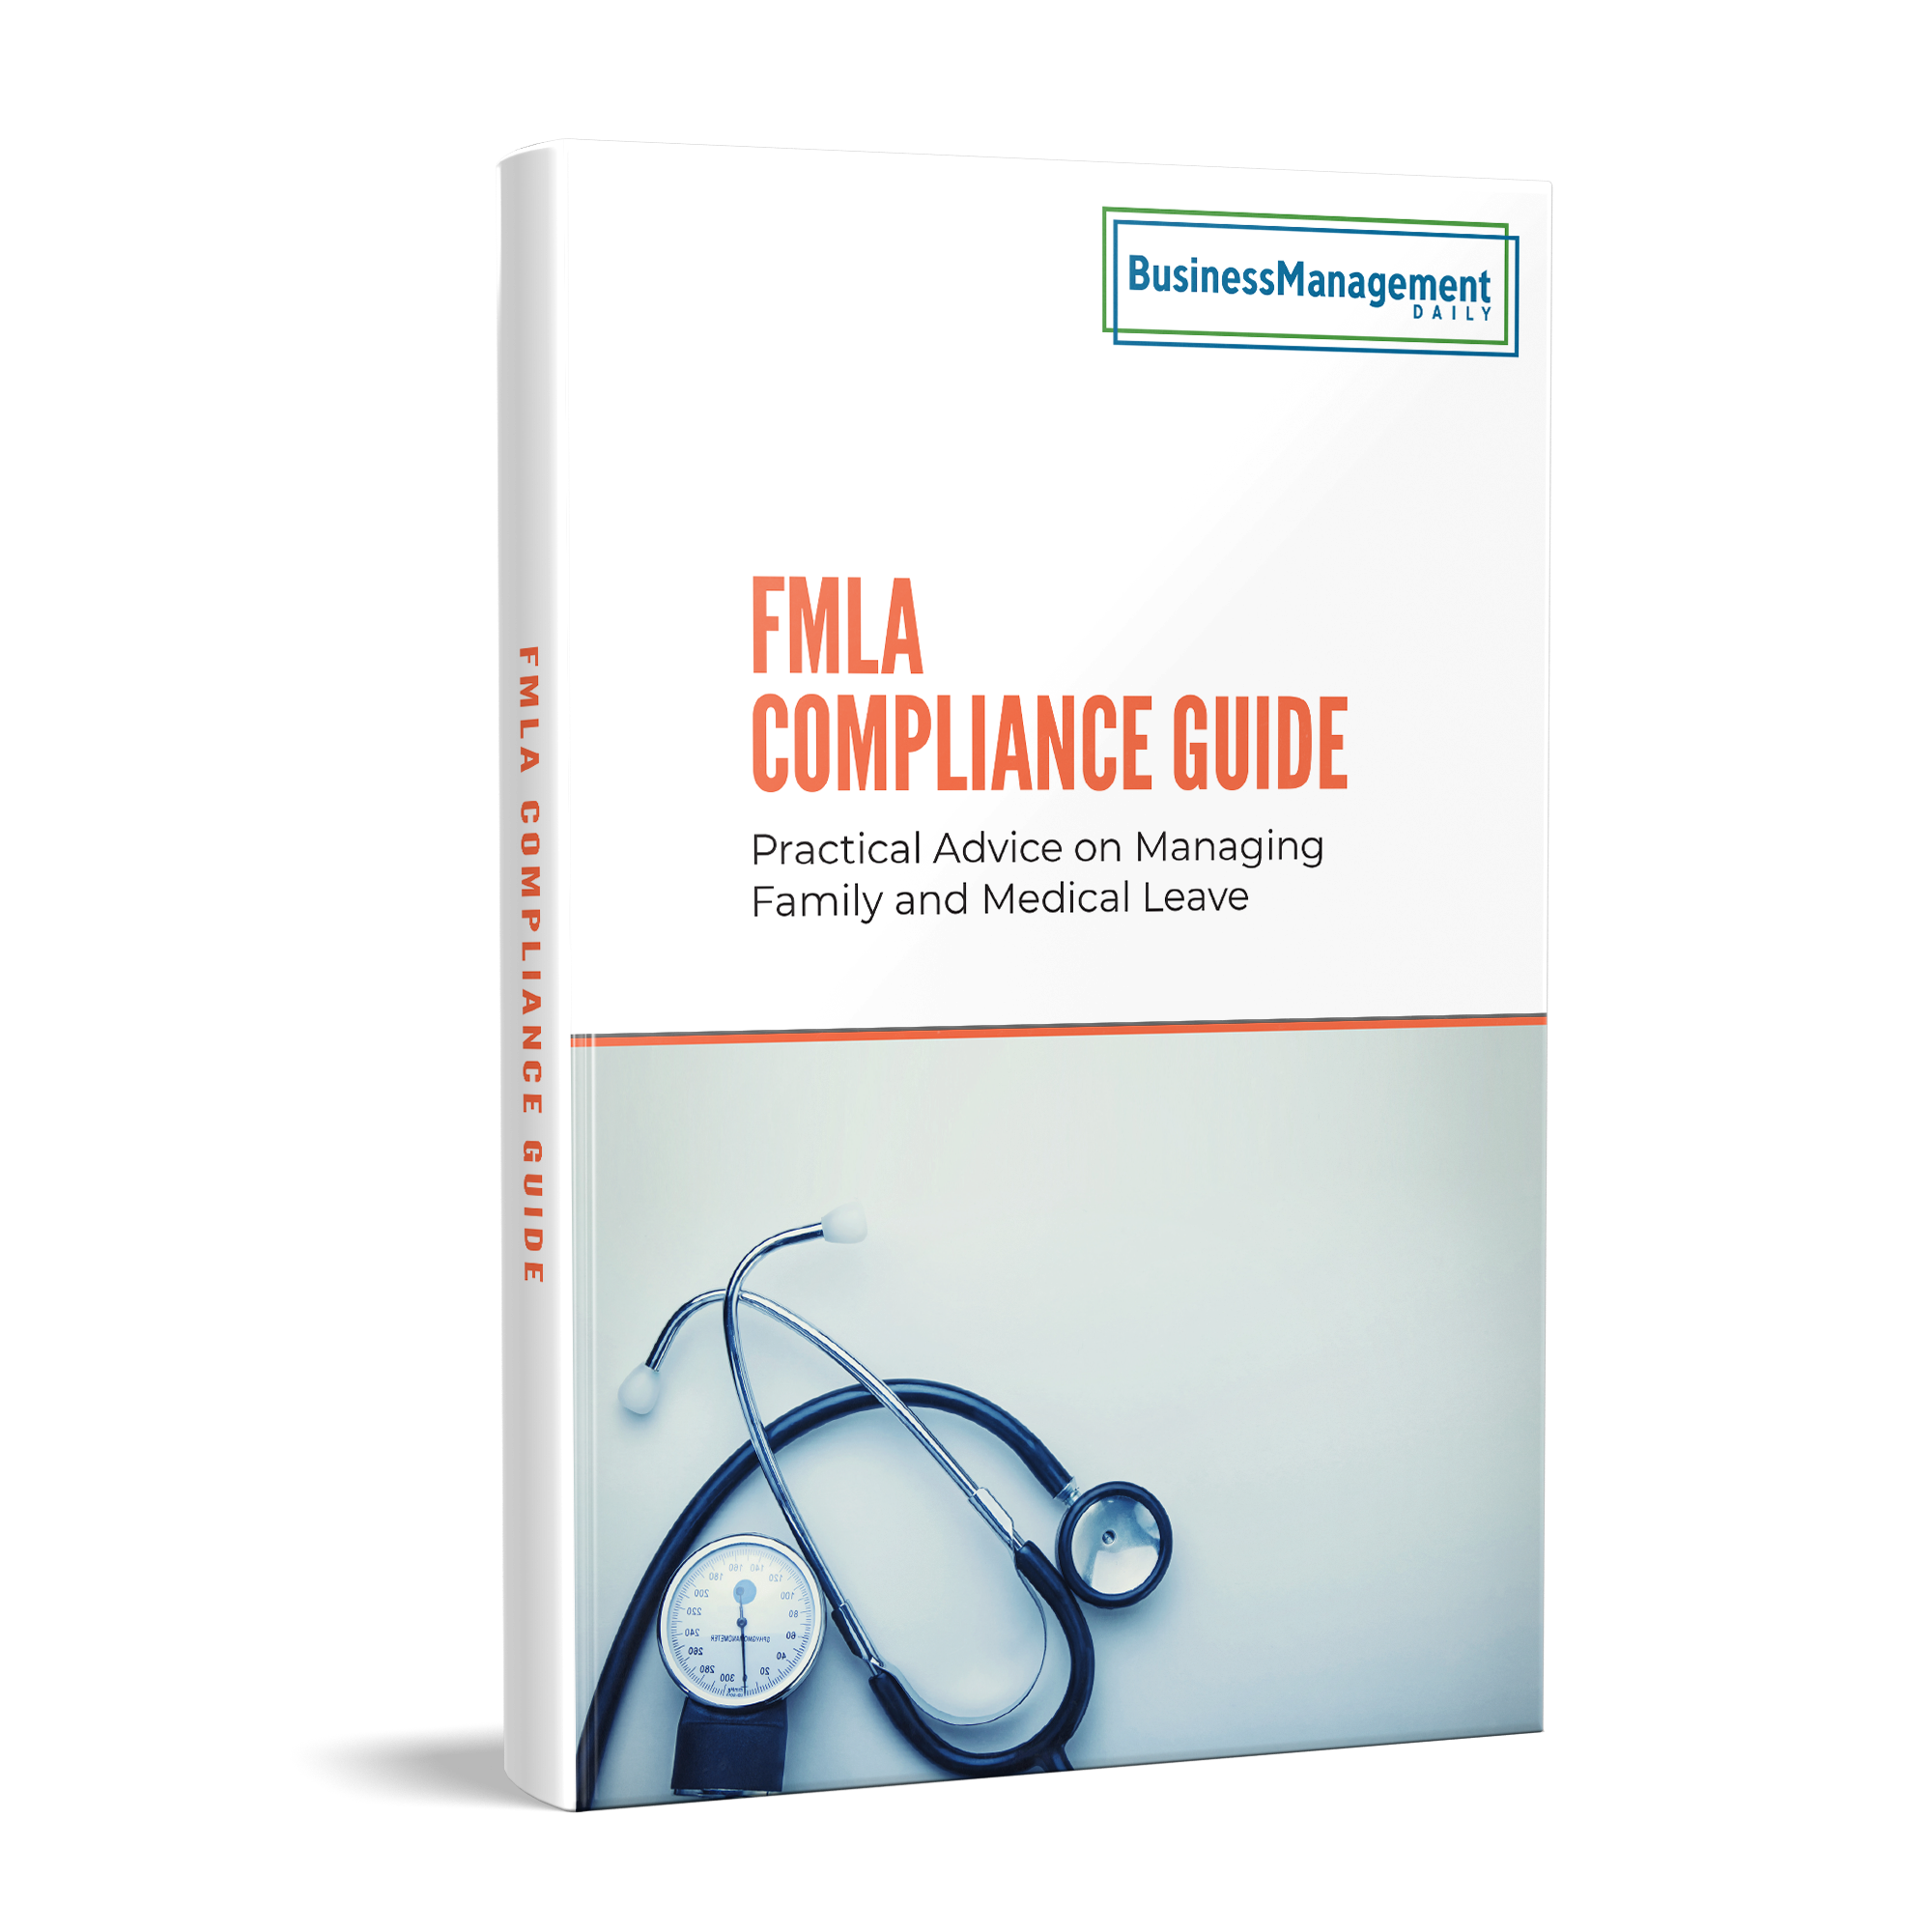 FMLA Compliance Guide